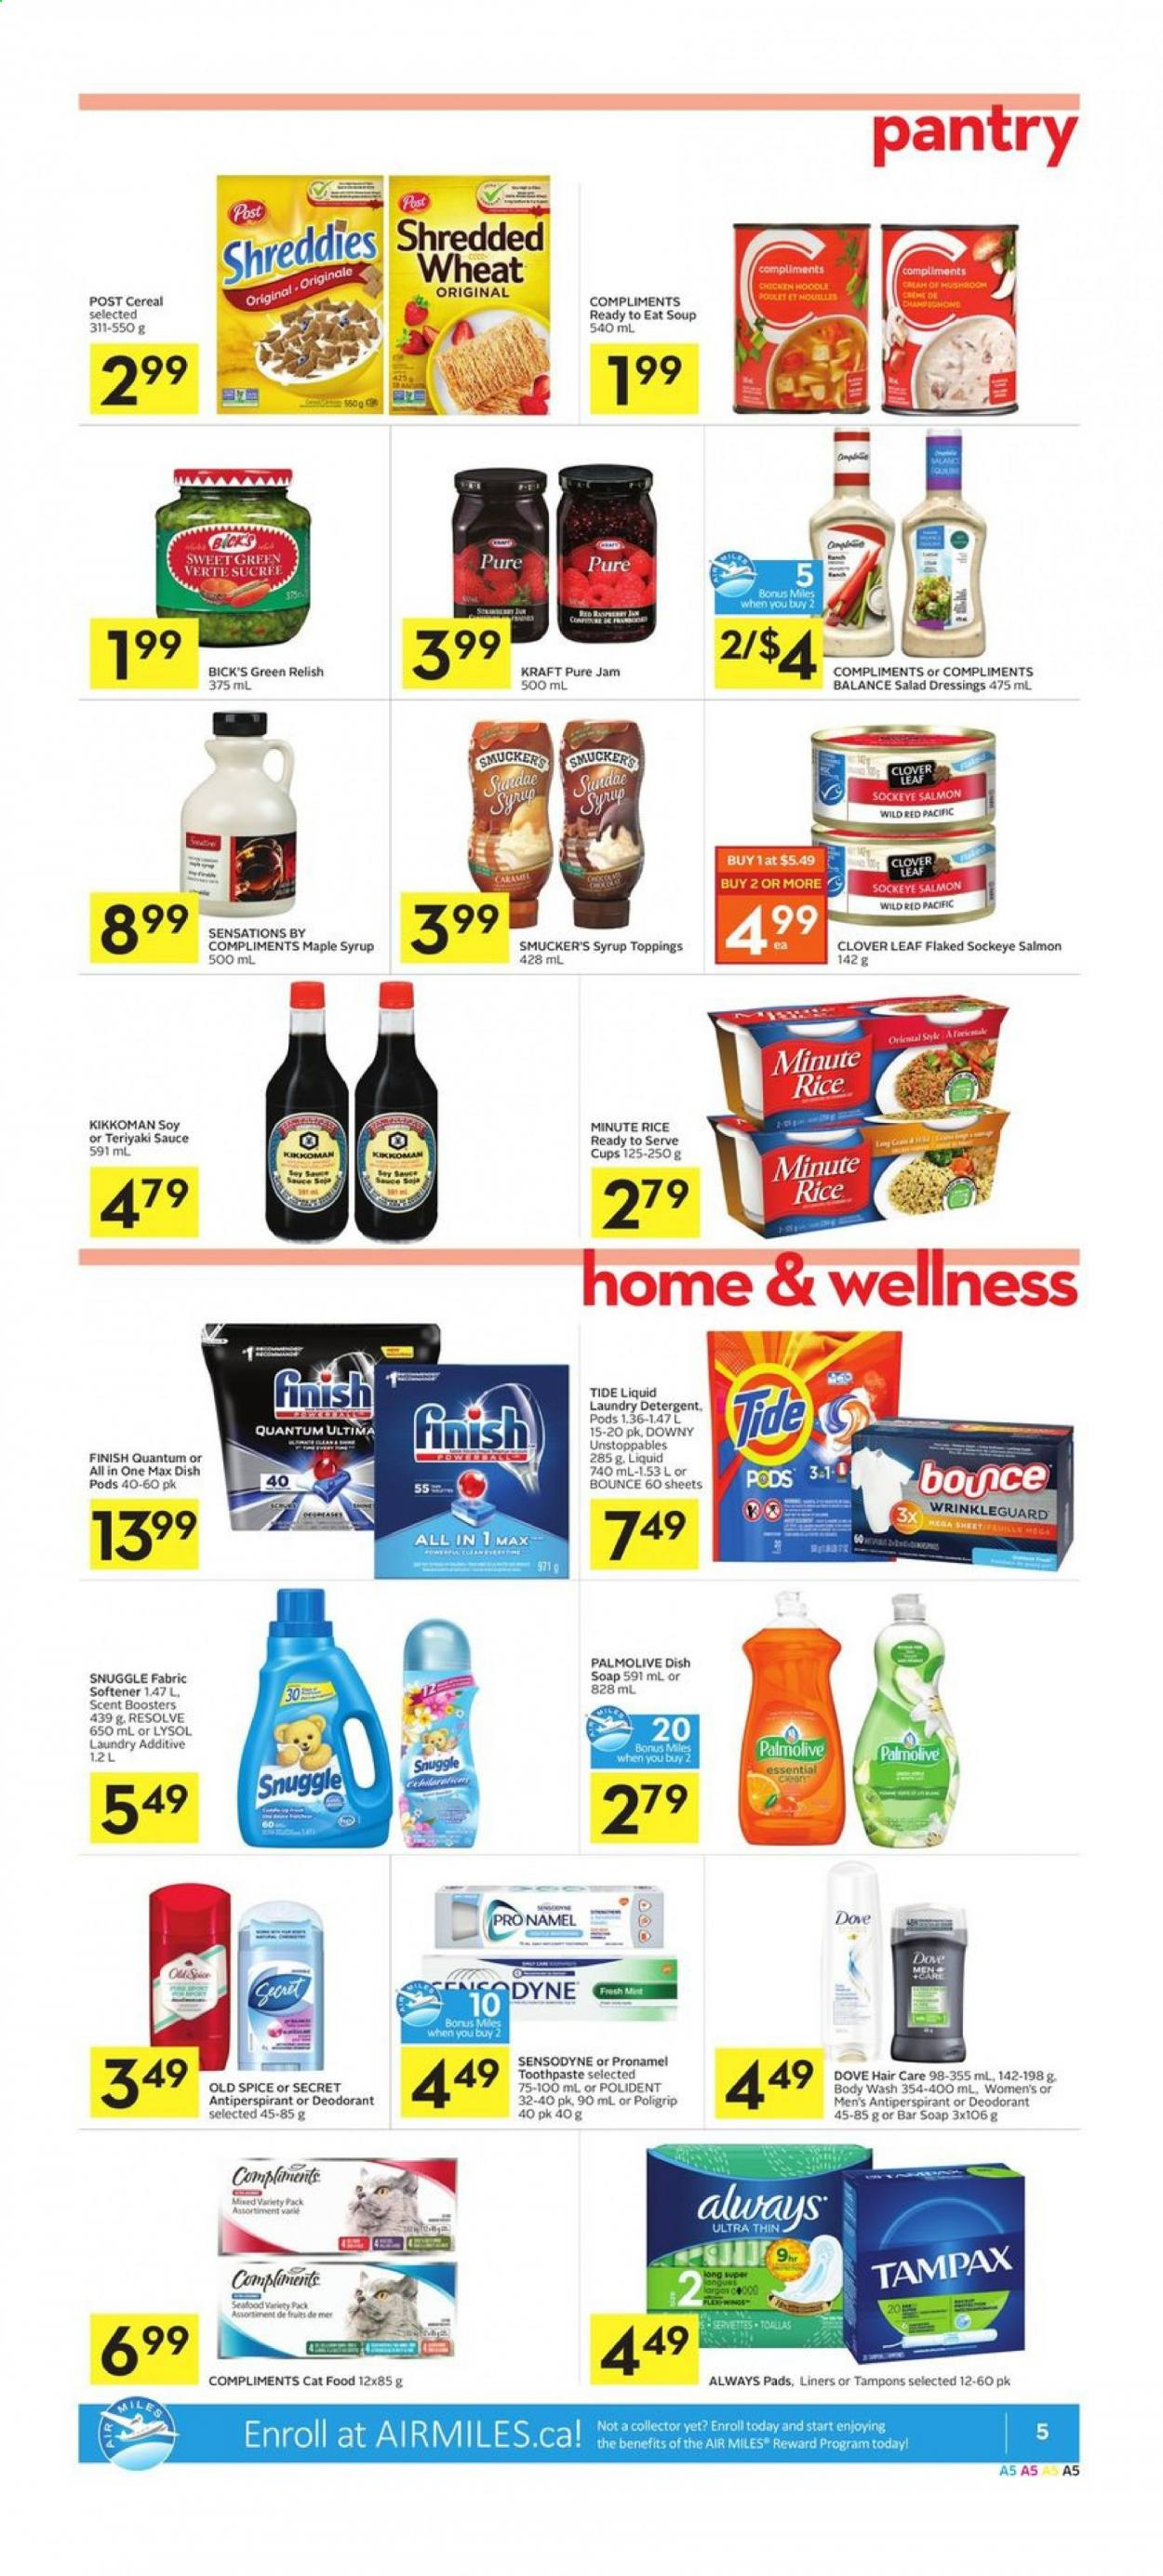 Foodland Flyer  - May 28, 2020 - June 03, 2020. Page 5.